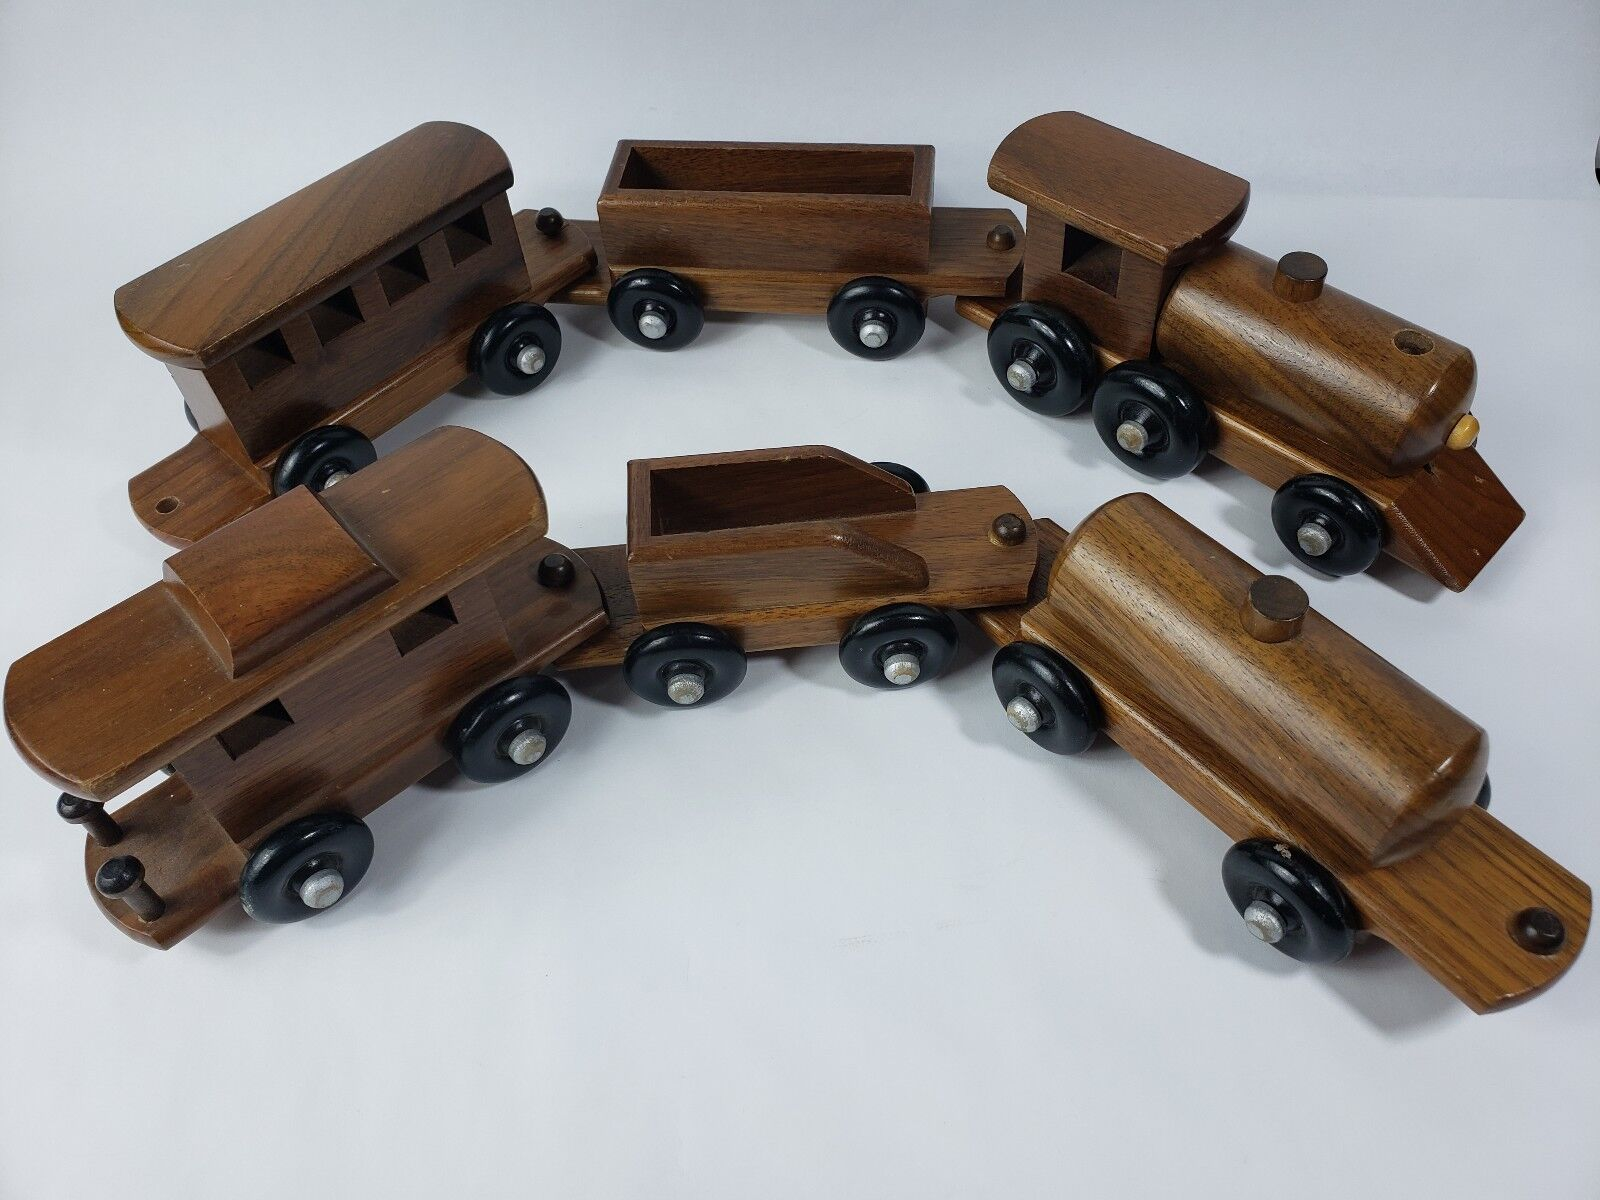 Unbranded Wooden 6 Car Peg In Hole Attachment Train (809)